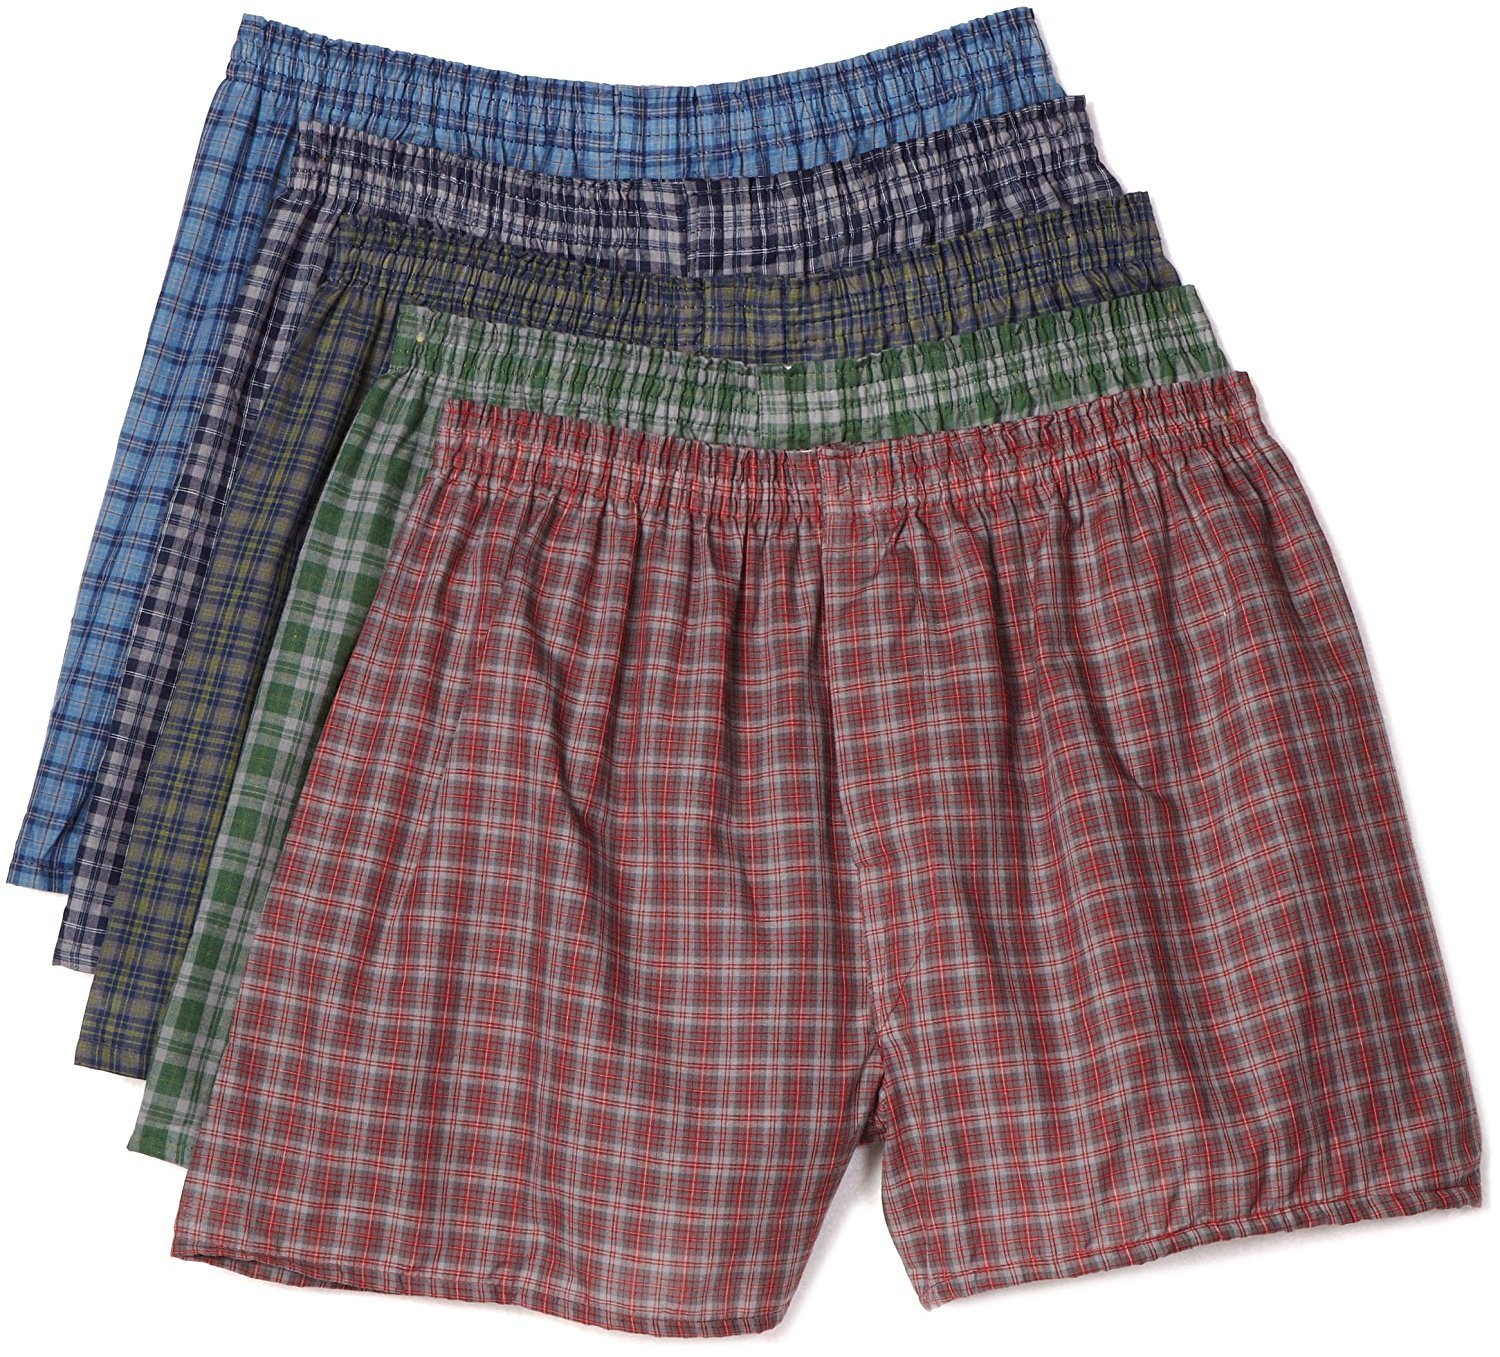 Fruit of The Loom Men's Woven Tartan and Plaid Boxer 5-Pack (Assorted Tartan, XX-Large/46-48 inches)